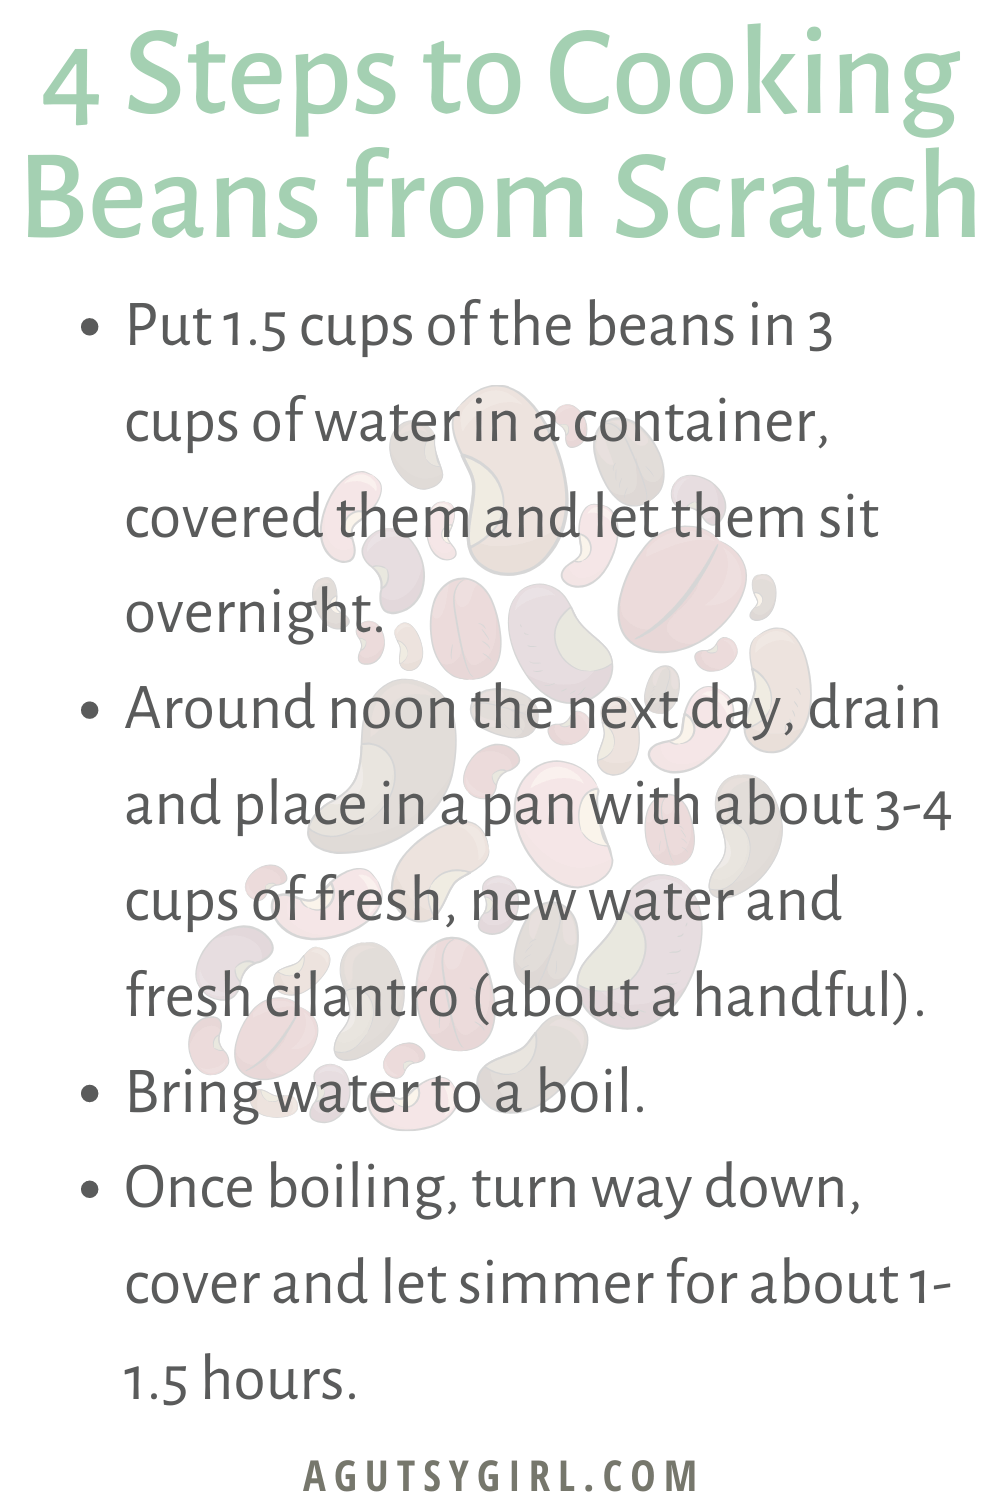 How to Cook Beans from Scratch agutsygirl.com #beans #homecooking #guthealth #fiber